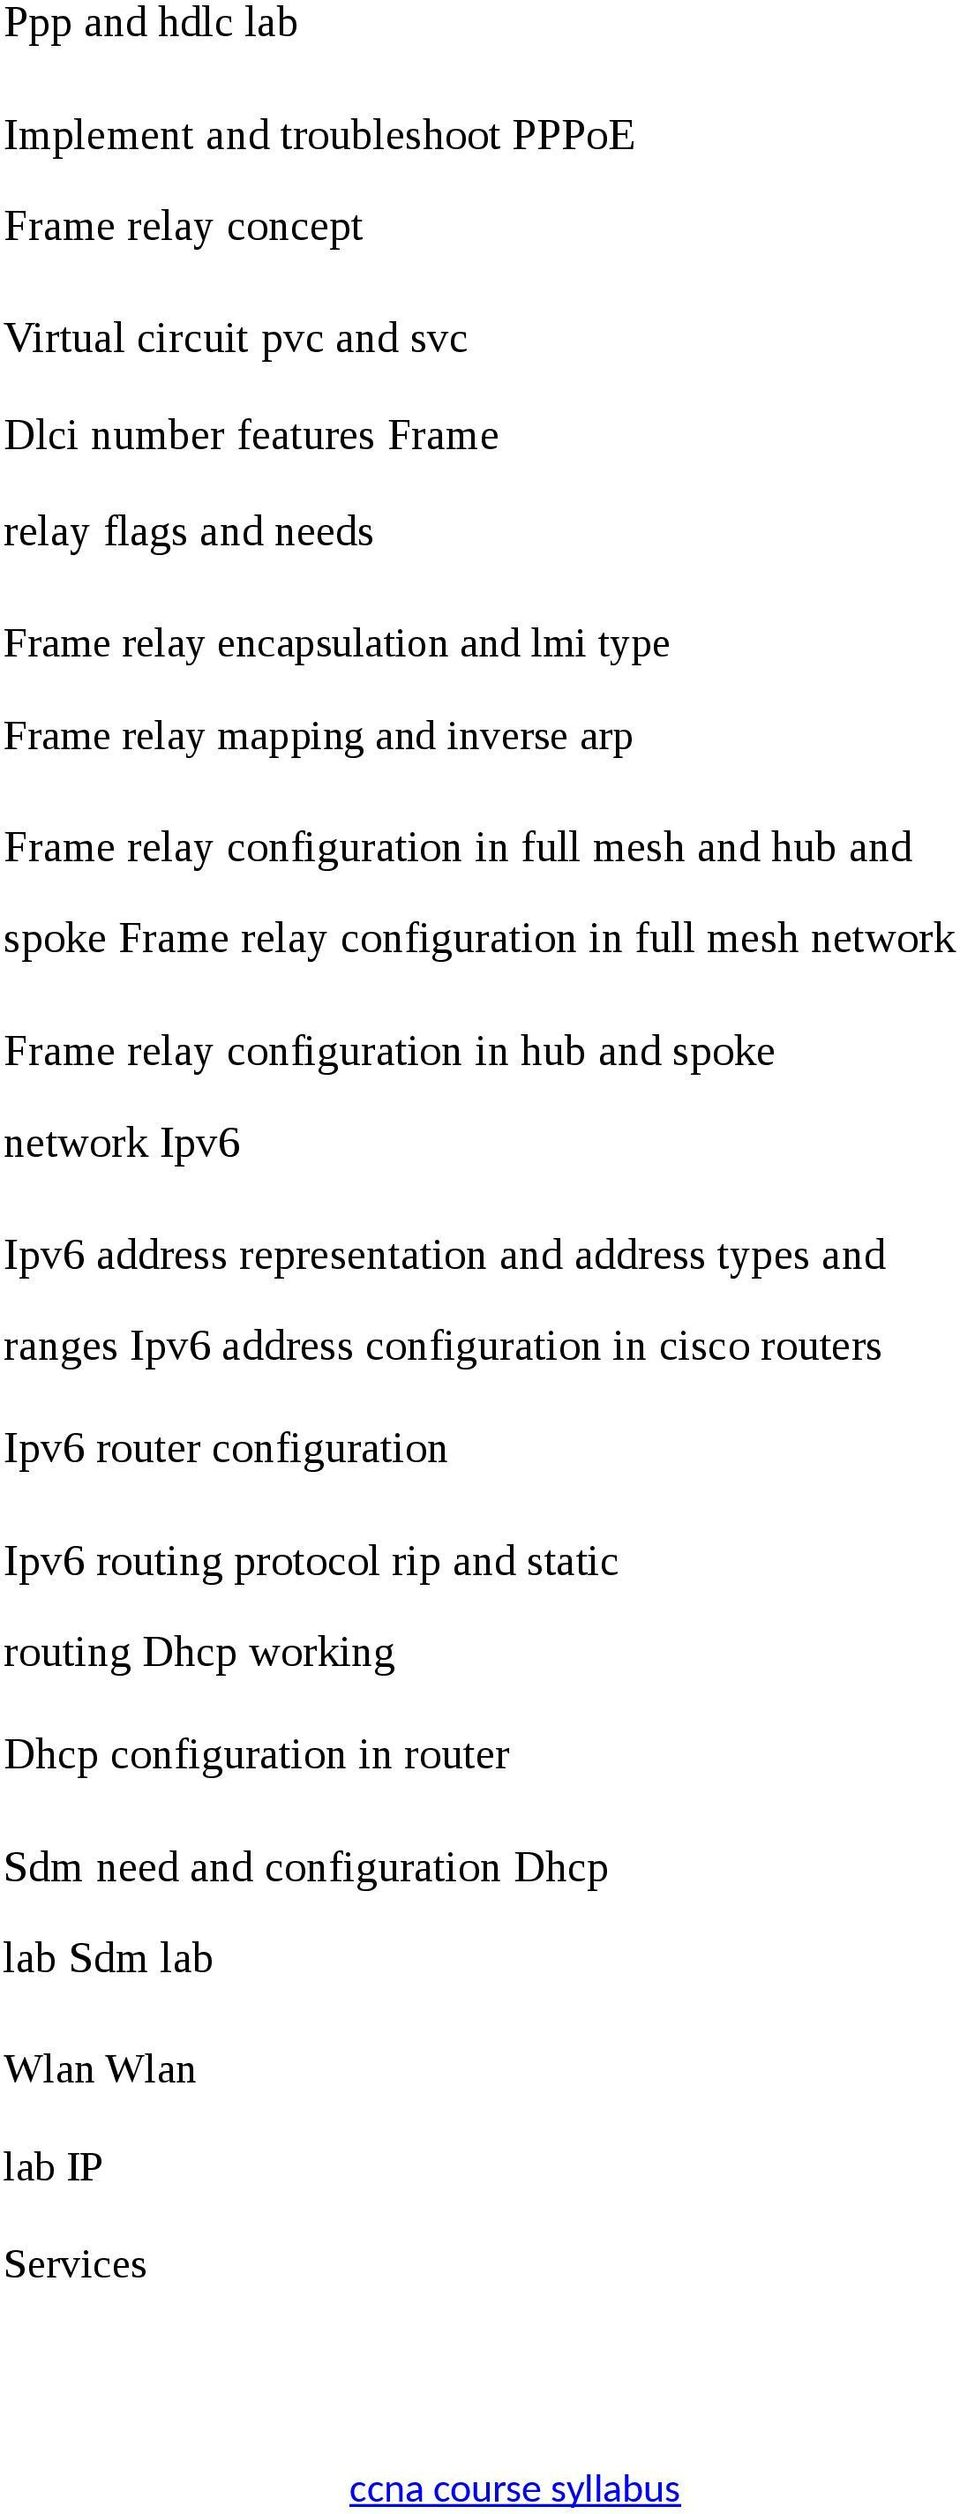 Frame relay configuration in hub and spoke network Ipv6 Ipv6 address representation and address types and ranges Ipv6 address configuration in cisco routers Ipv6